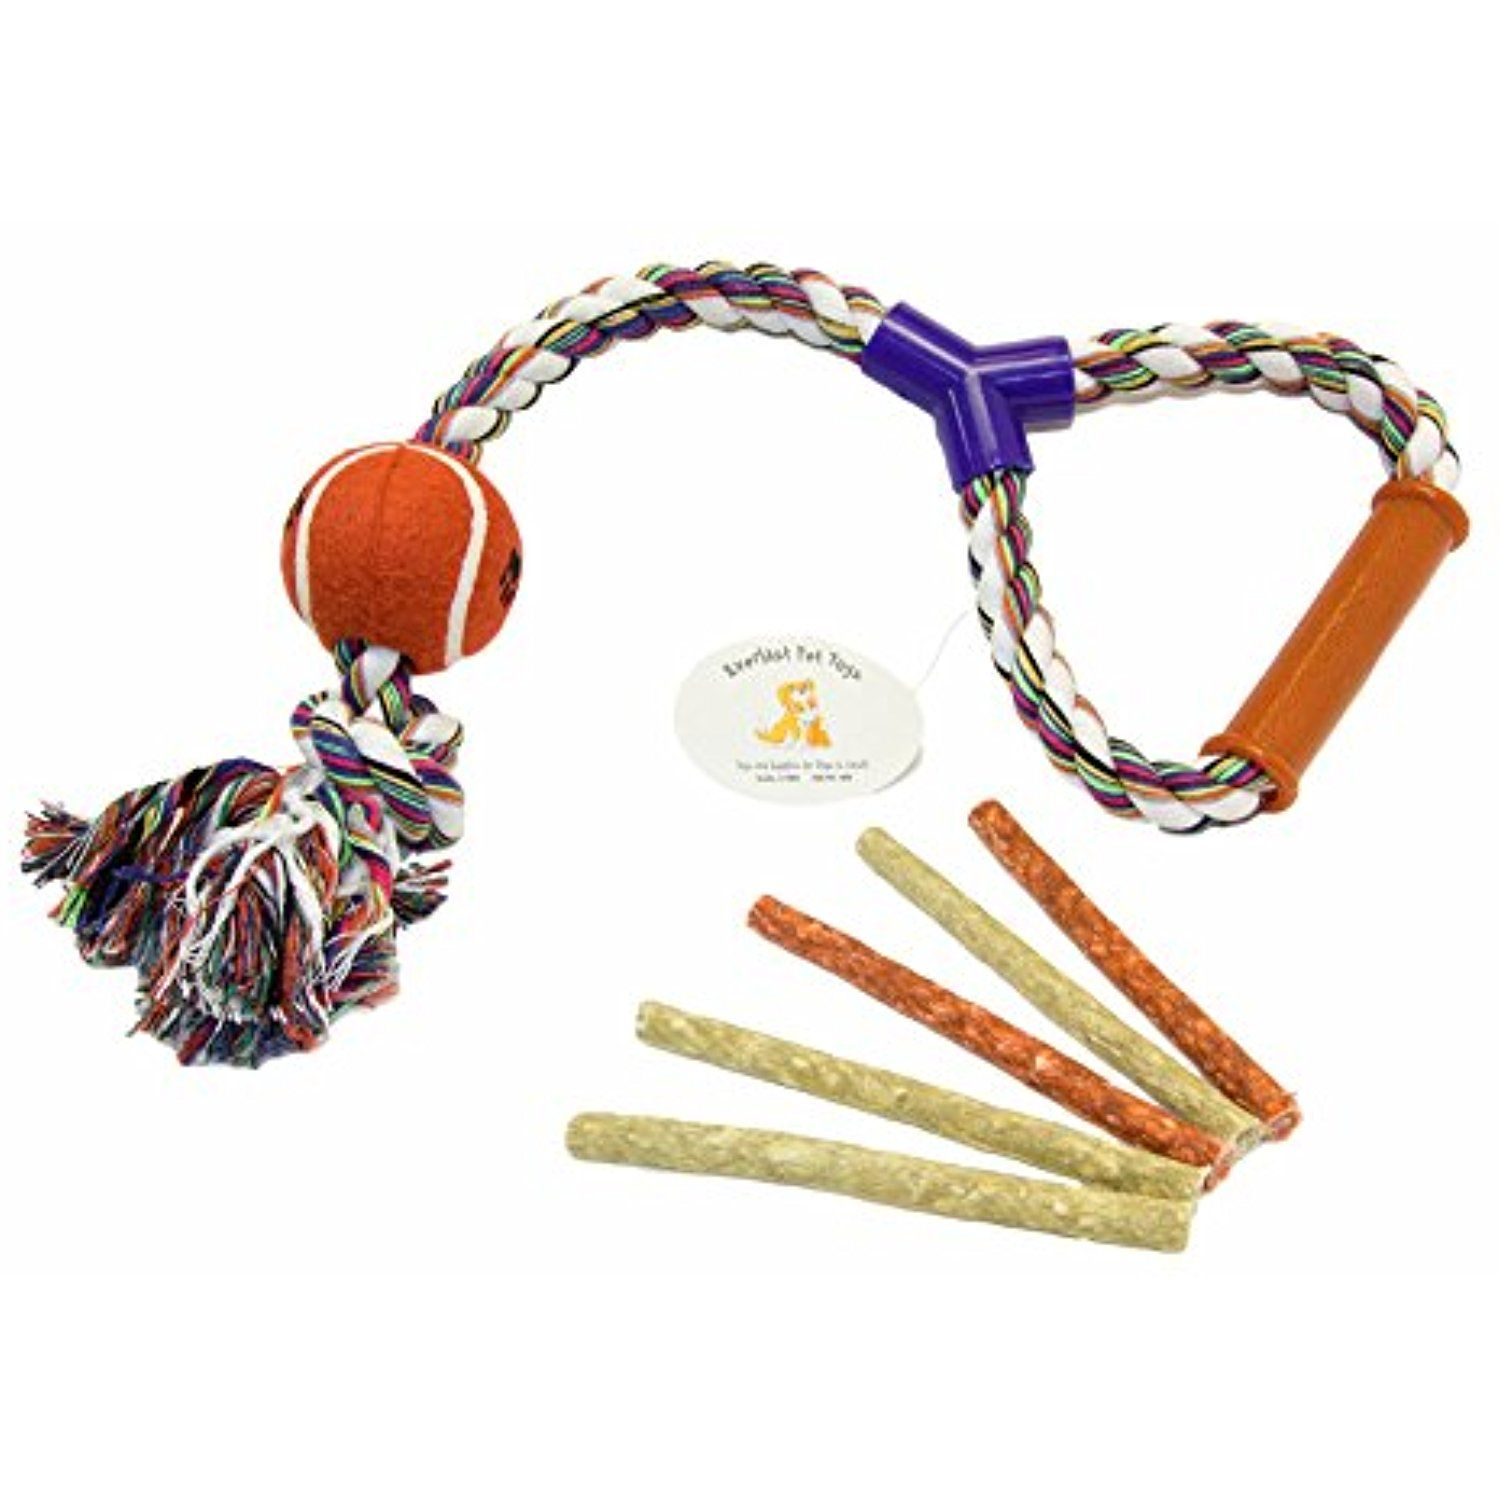 Everlast Pet Toys Best Chew Rope For Dogs